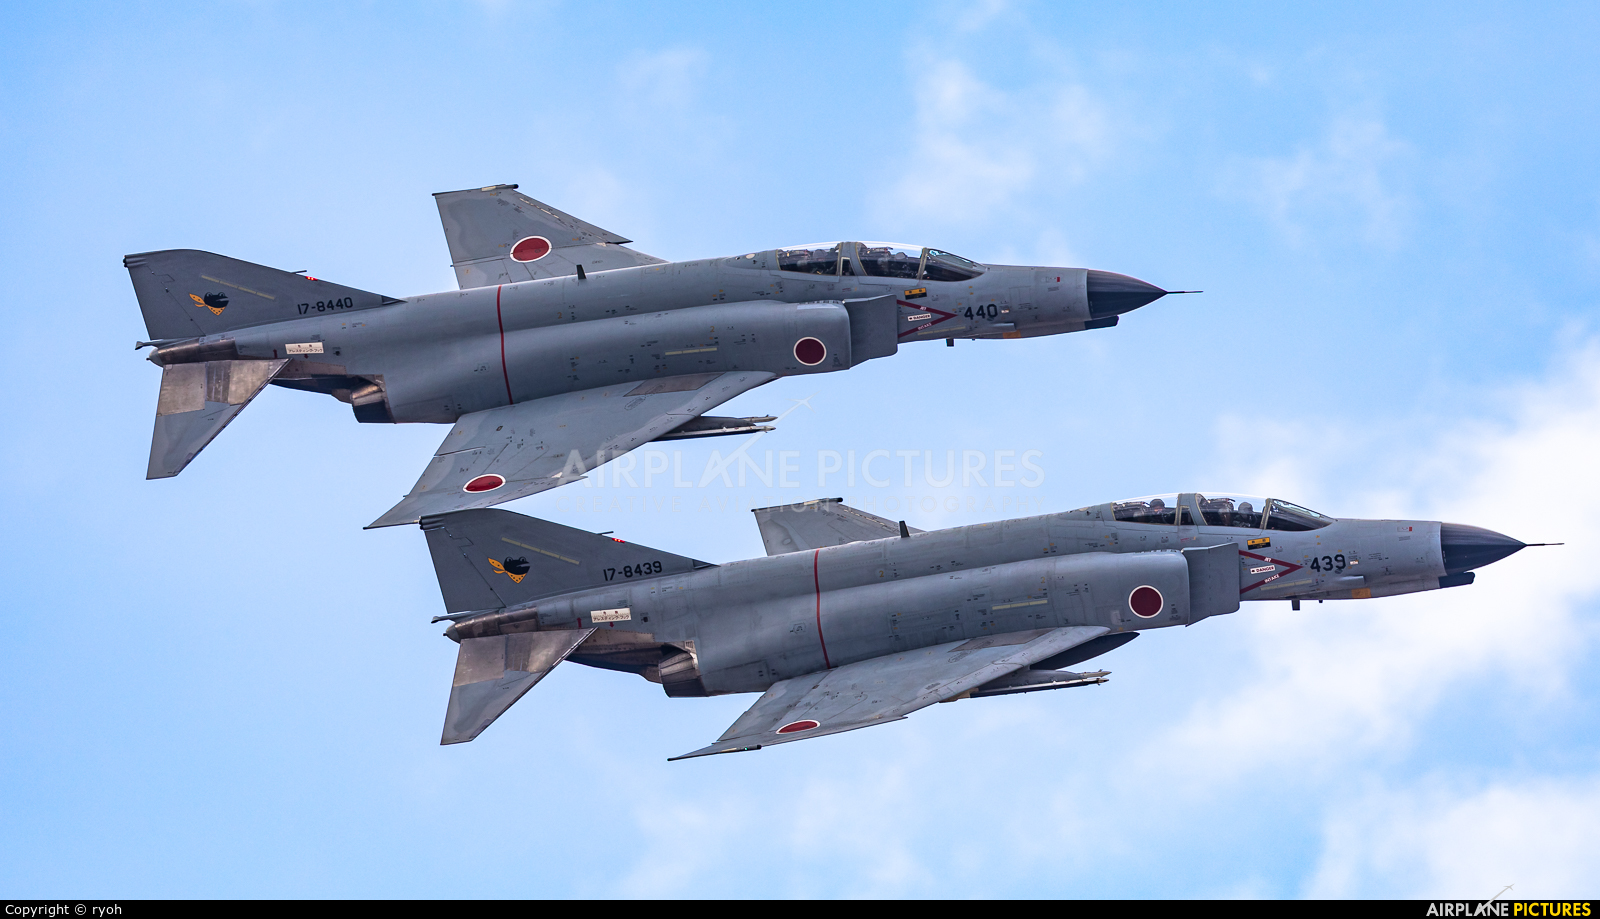 Japan - Air Self Defence Force 17-8439 aircraft at Ibaraki - Hyakuri AB